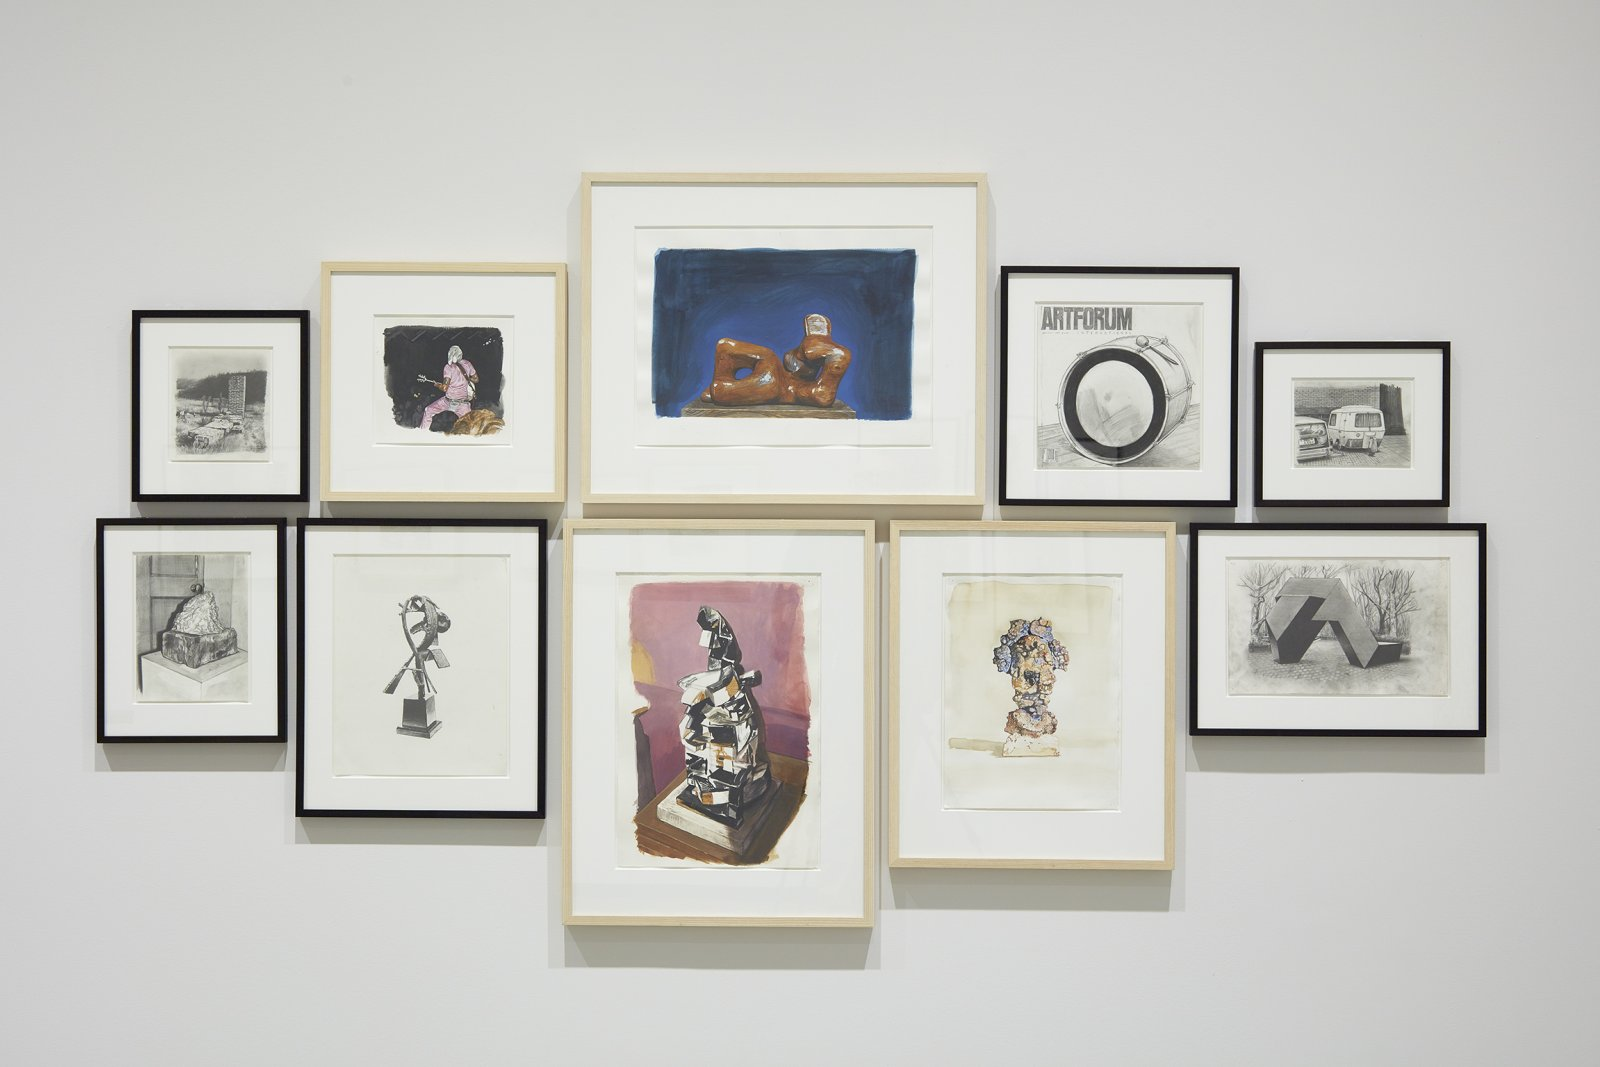 Damian Moppett, Watercolour Drawing Project, 2004–2008, watercolour on paper, dimensions variable. Installation view, Every Story Has Two Sides, Art Gallery of Alberta, Edmonton, 2016 by Damian Moppett